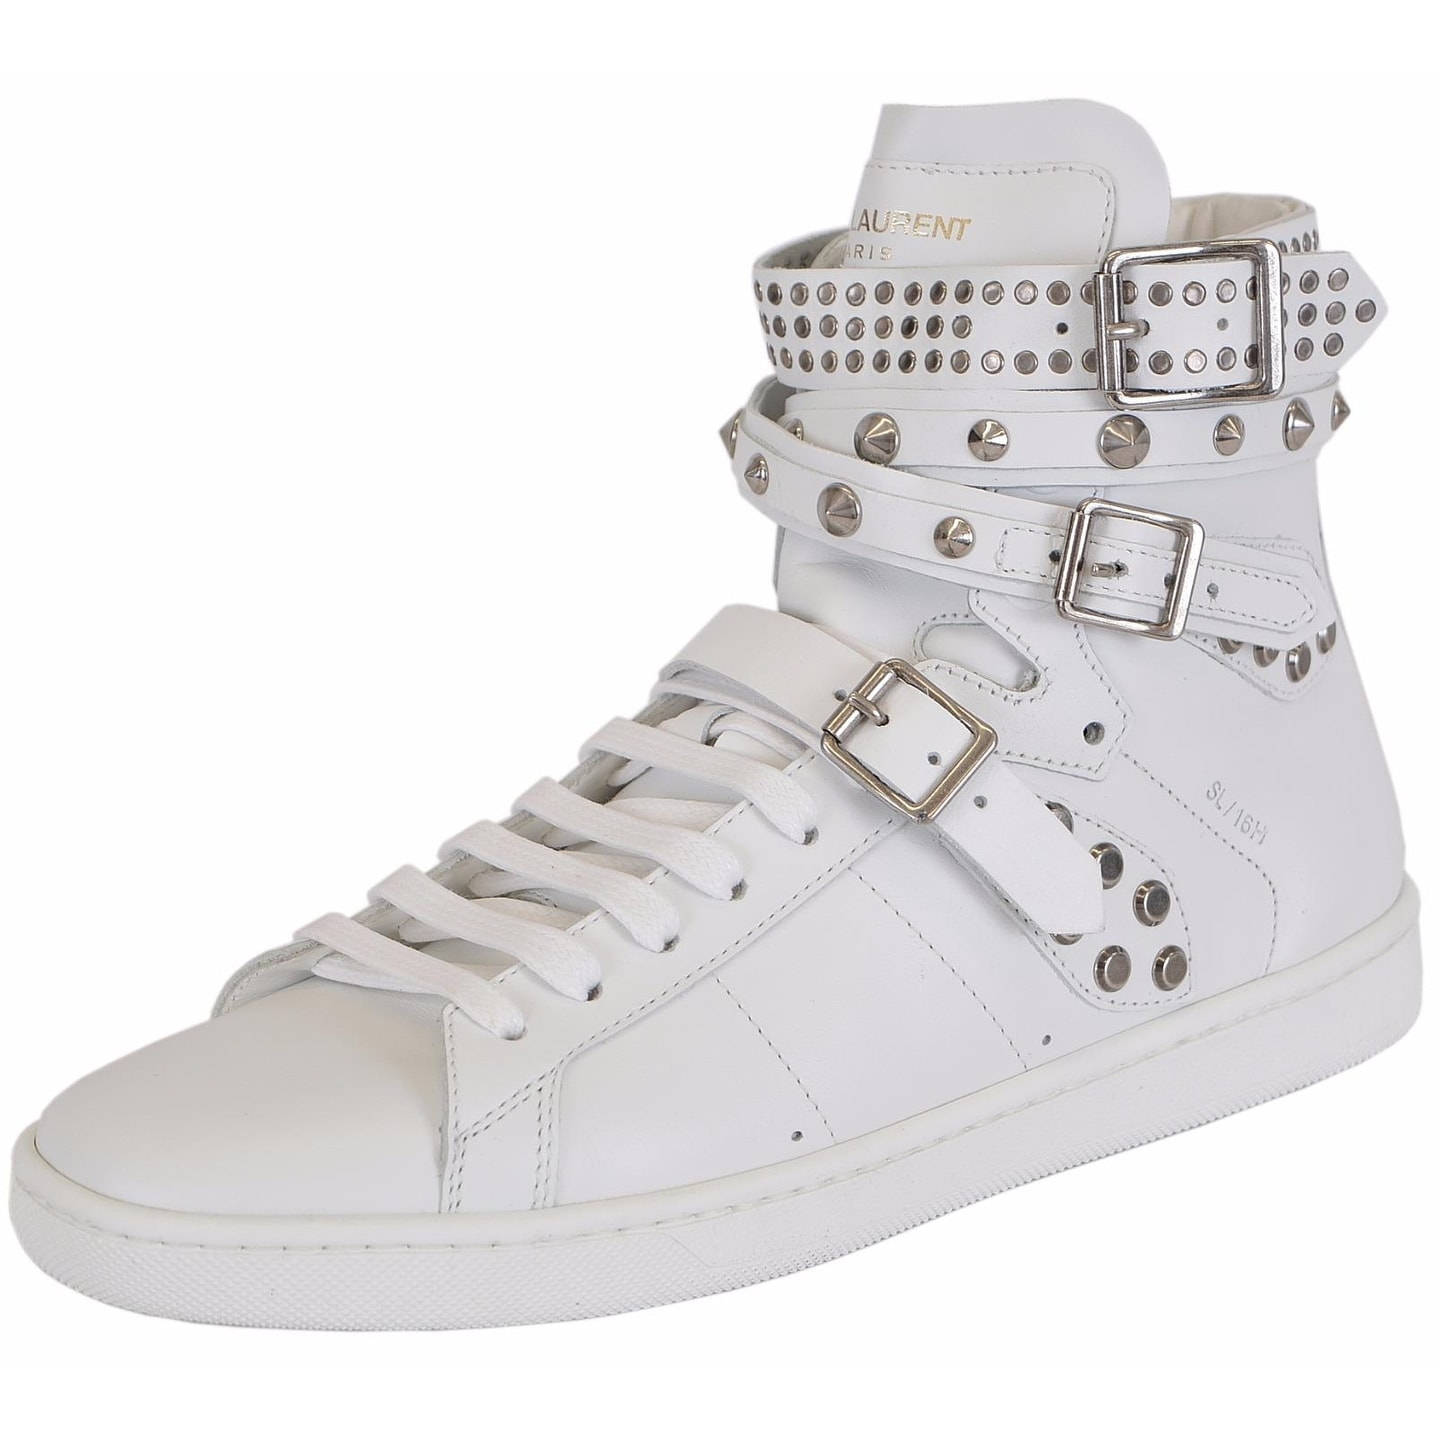 ce5169b8bf5 Shop Yves Saint Laurent YSL Women's White Studded Court Classic Hi Top Sneakers  Shoes - Free Shipping Today - Overstock - 14535024